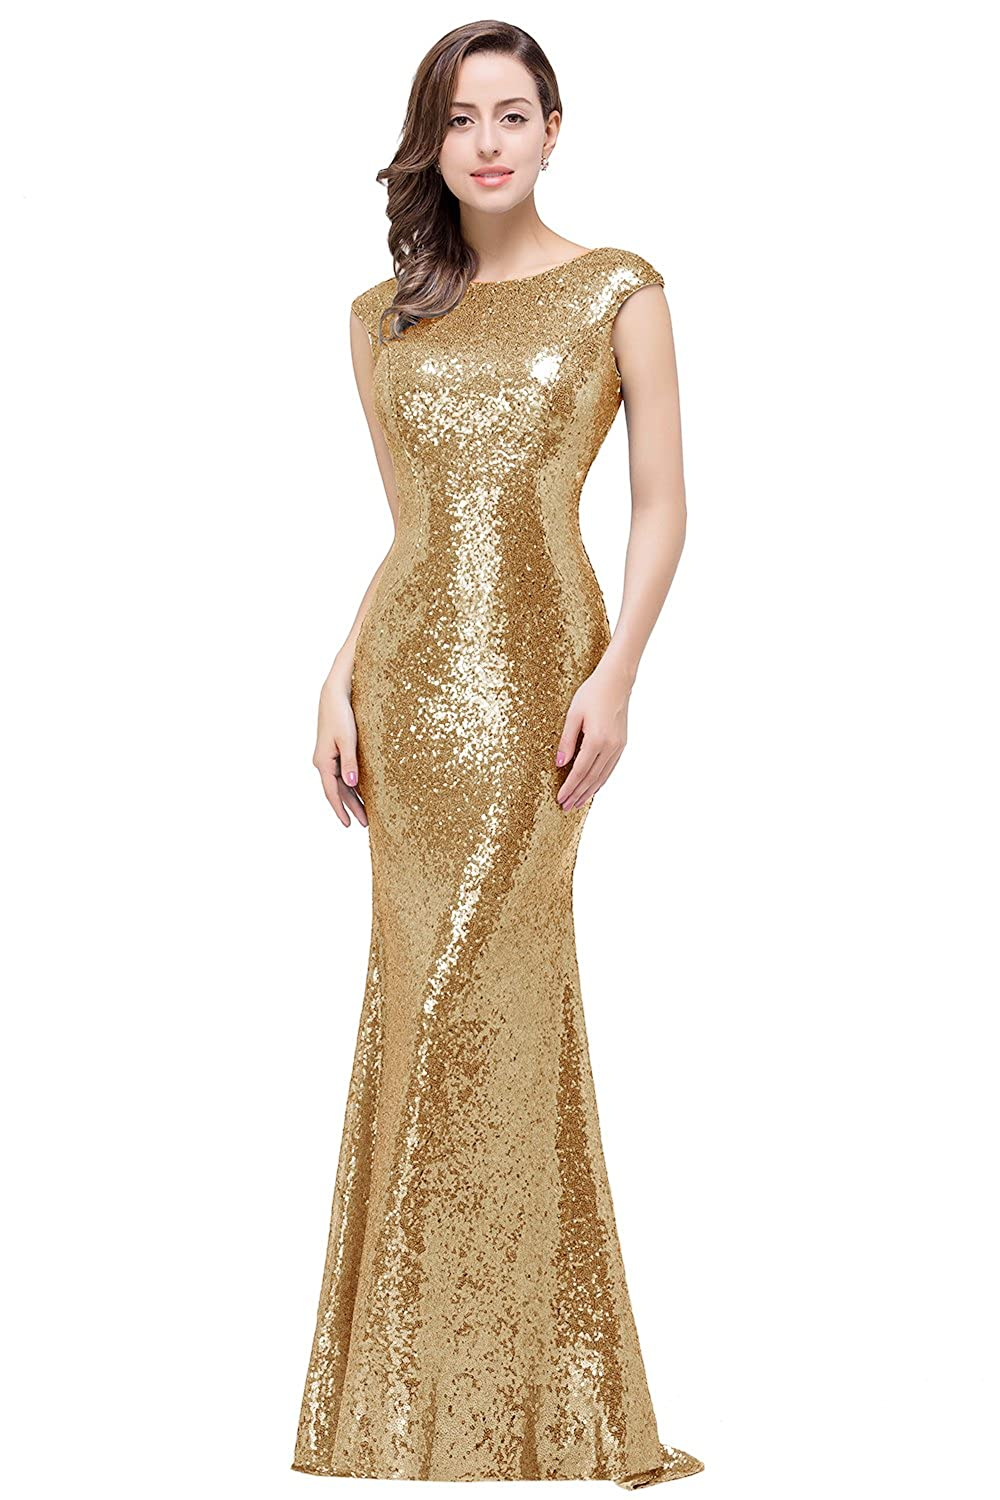 216a46999c6 Rose Gold Sequin Party Dress - Bailey s Blossoms